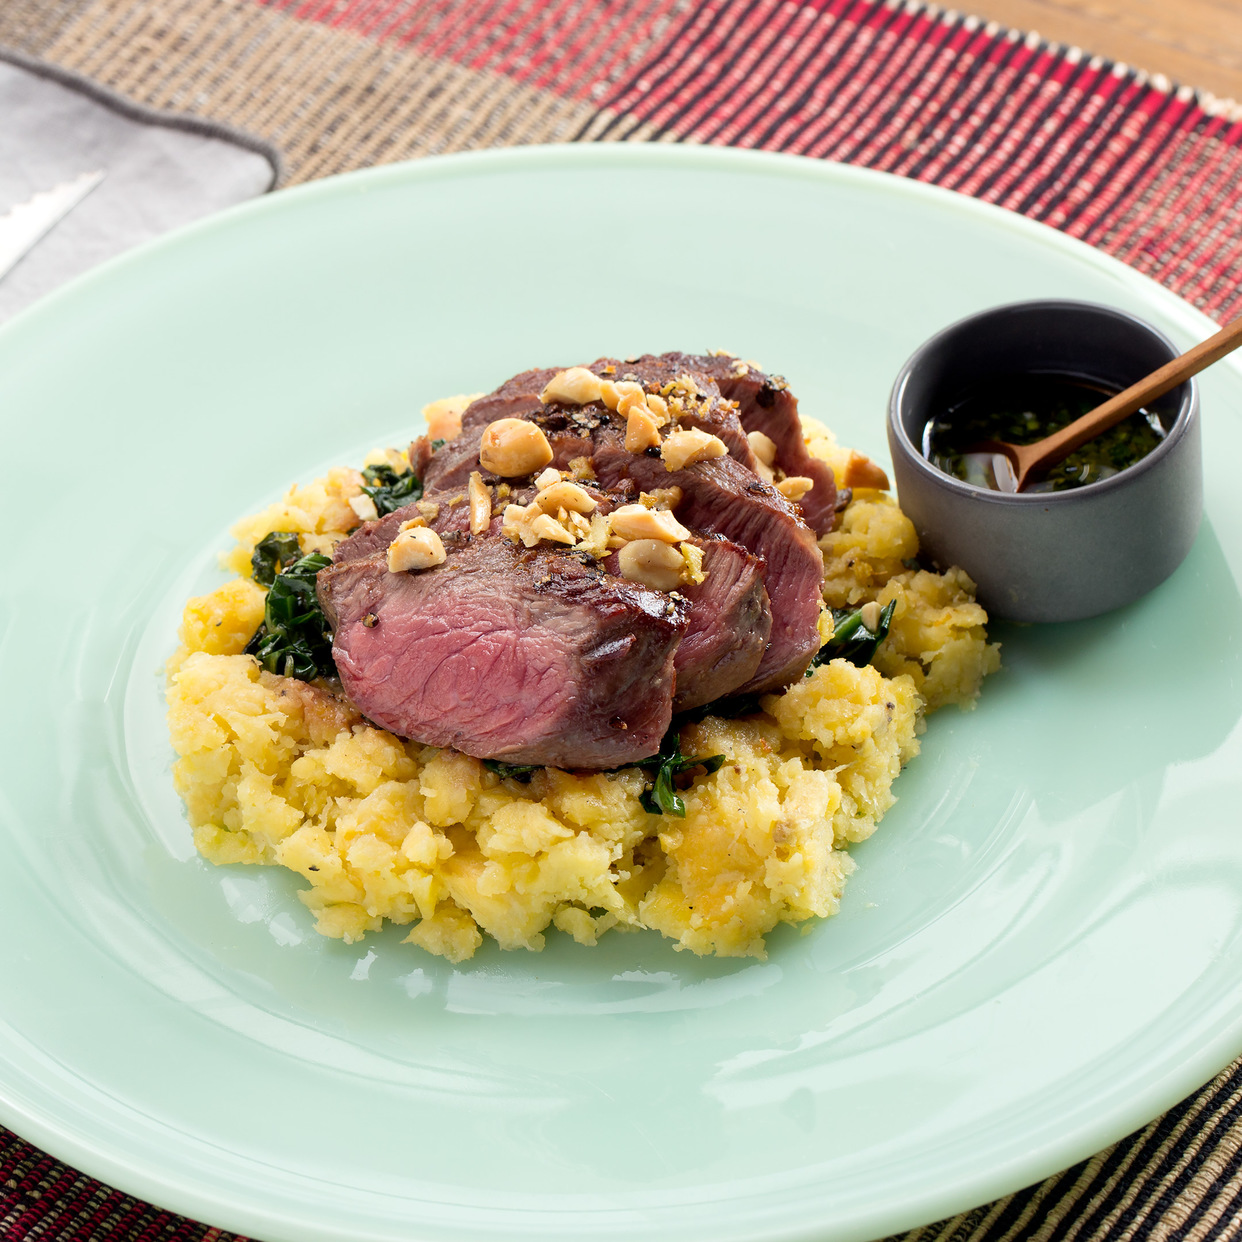 Grains of Paradise-Crusted Steaks with Mashed Plantain, Collard Greens & Ginger Peanuts